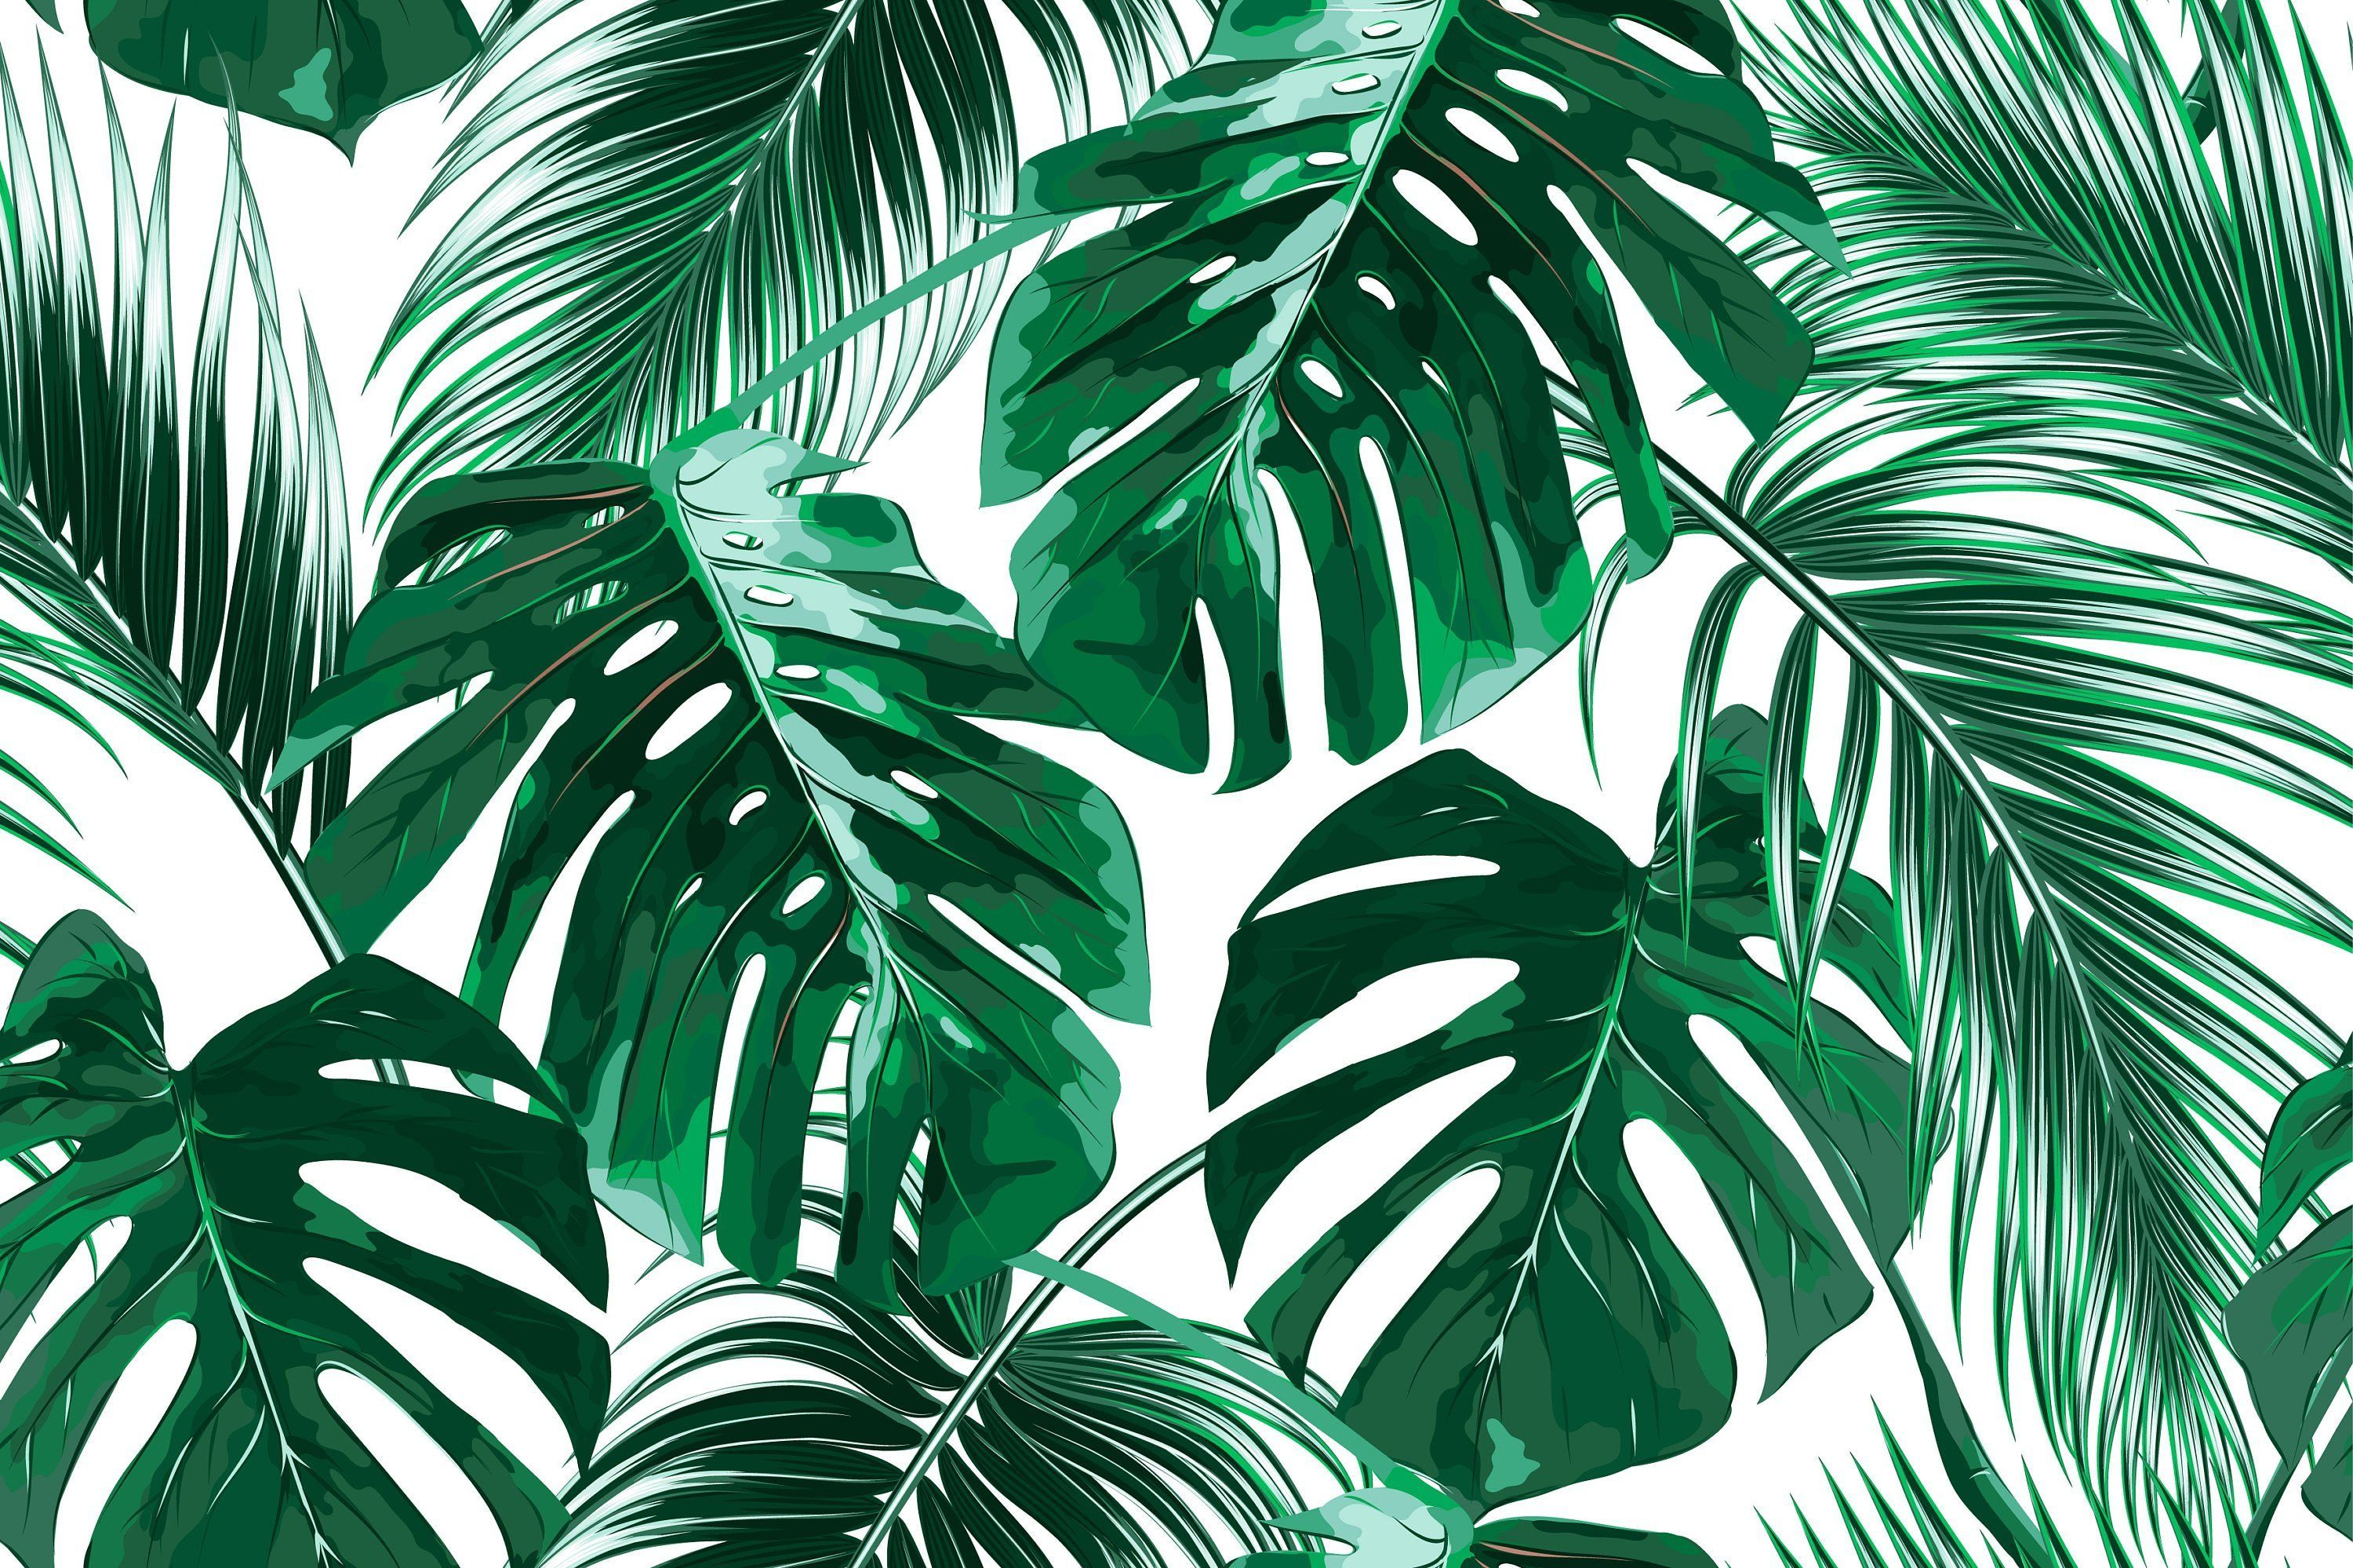 3000x1999 Removable Wallpaper Mural Peel & Stick Tropical Palm Leaves